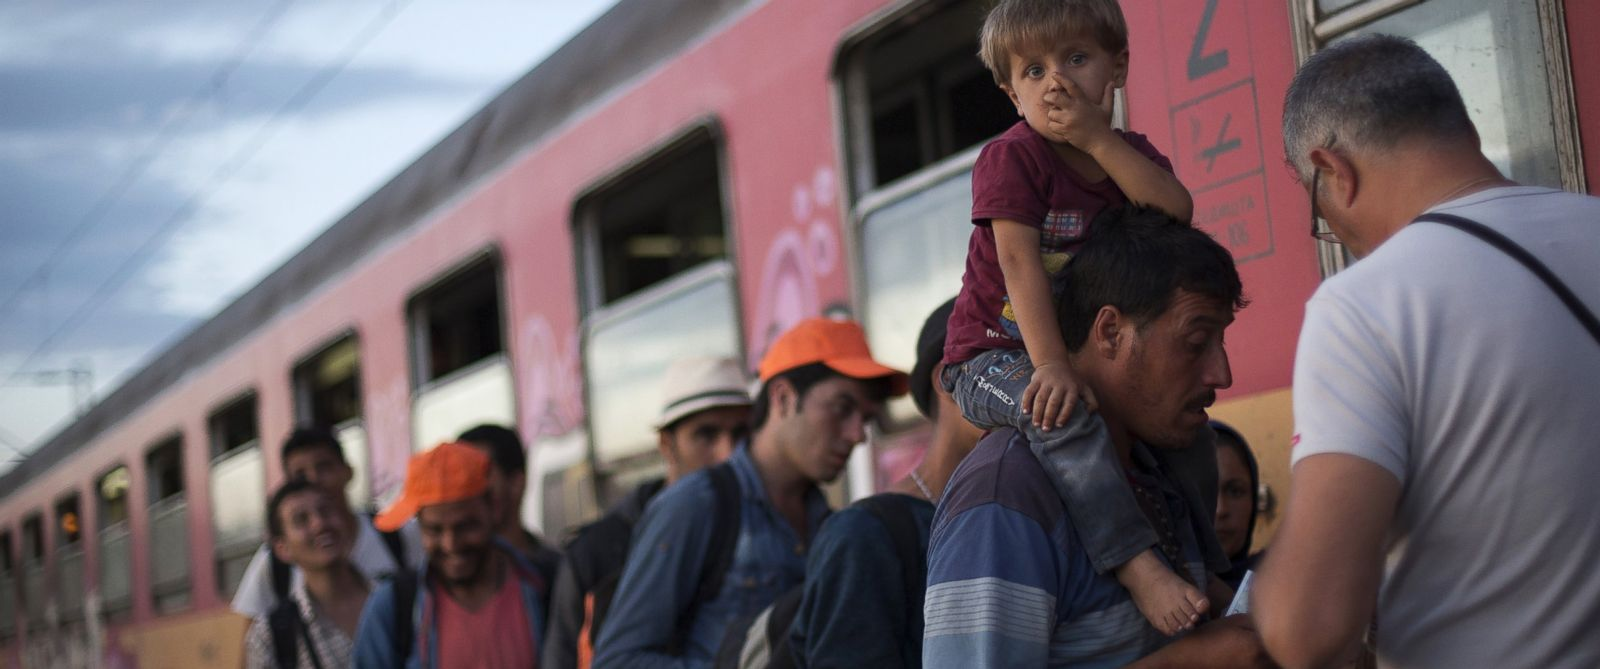 PHOTO: Migrants board a train after crossing the Macedonian-Greek border near Gevgelija, Macedonia, Sept. 6, 2015.